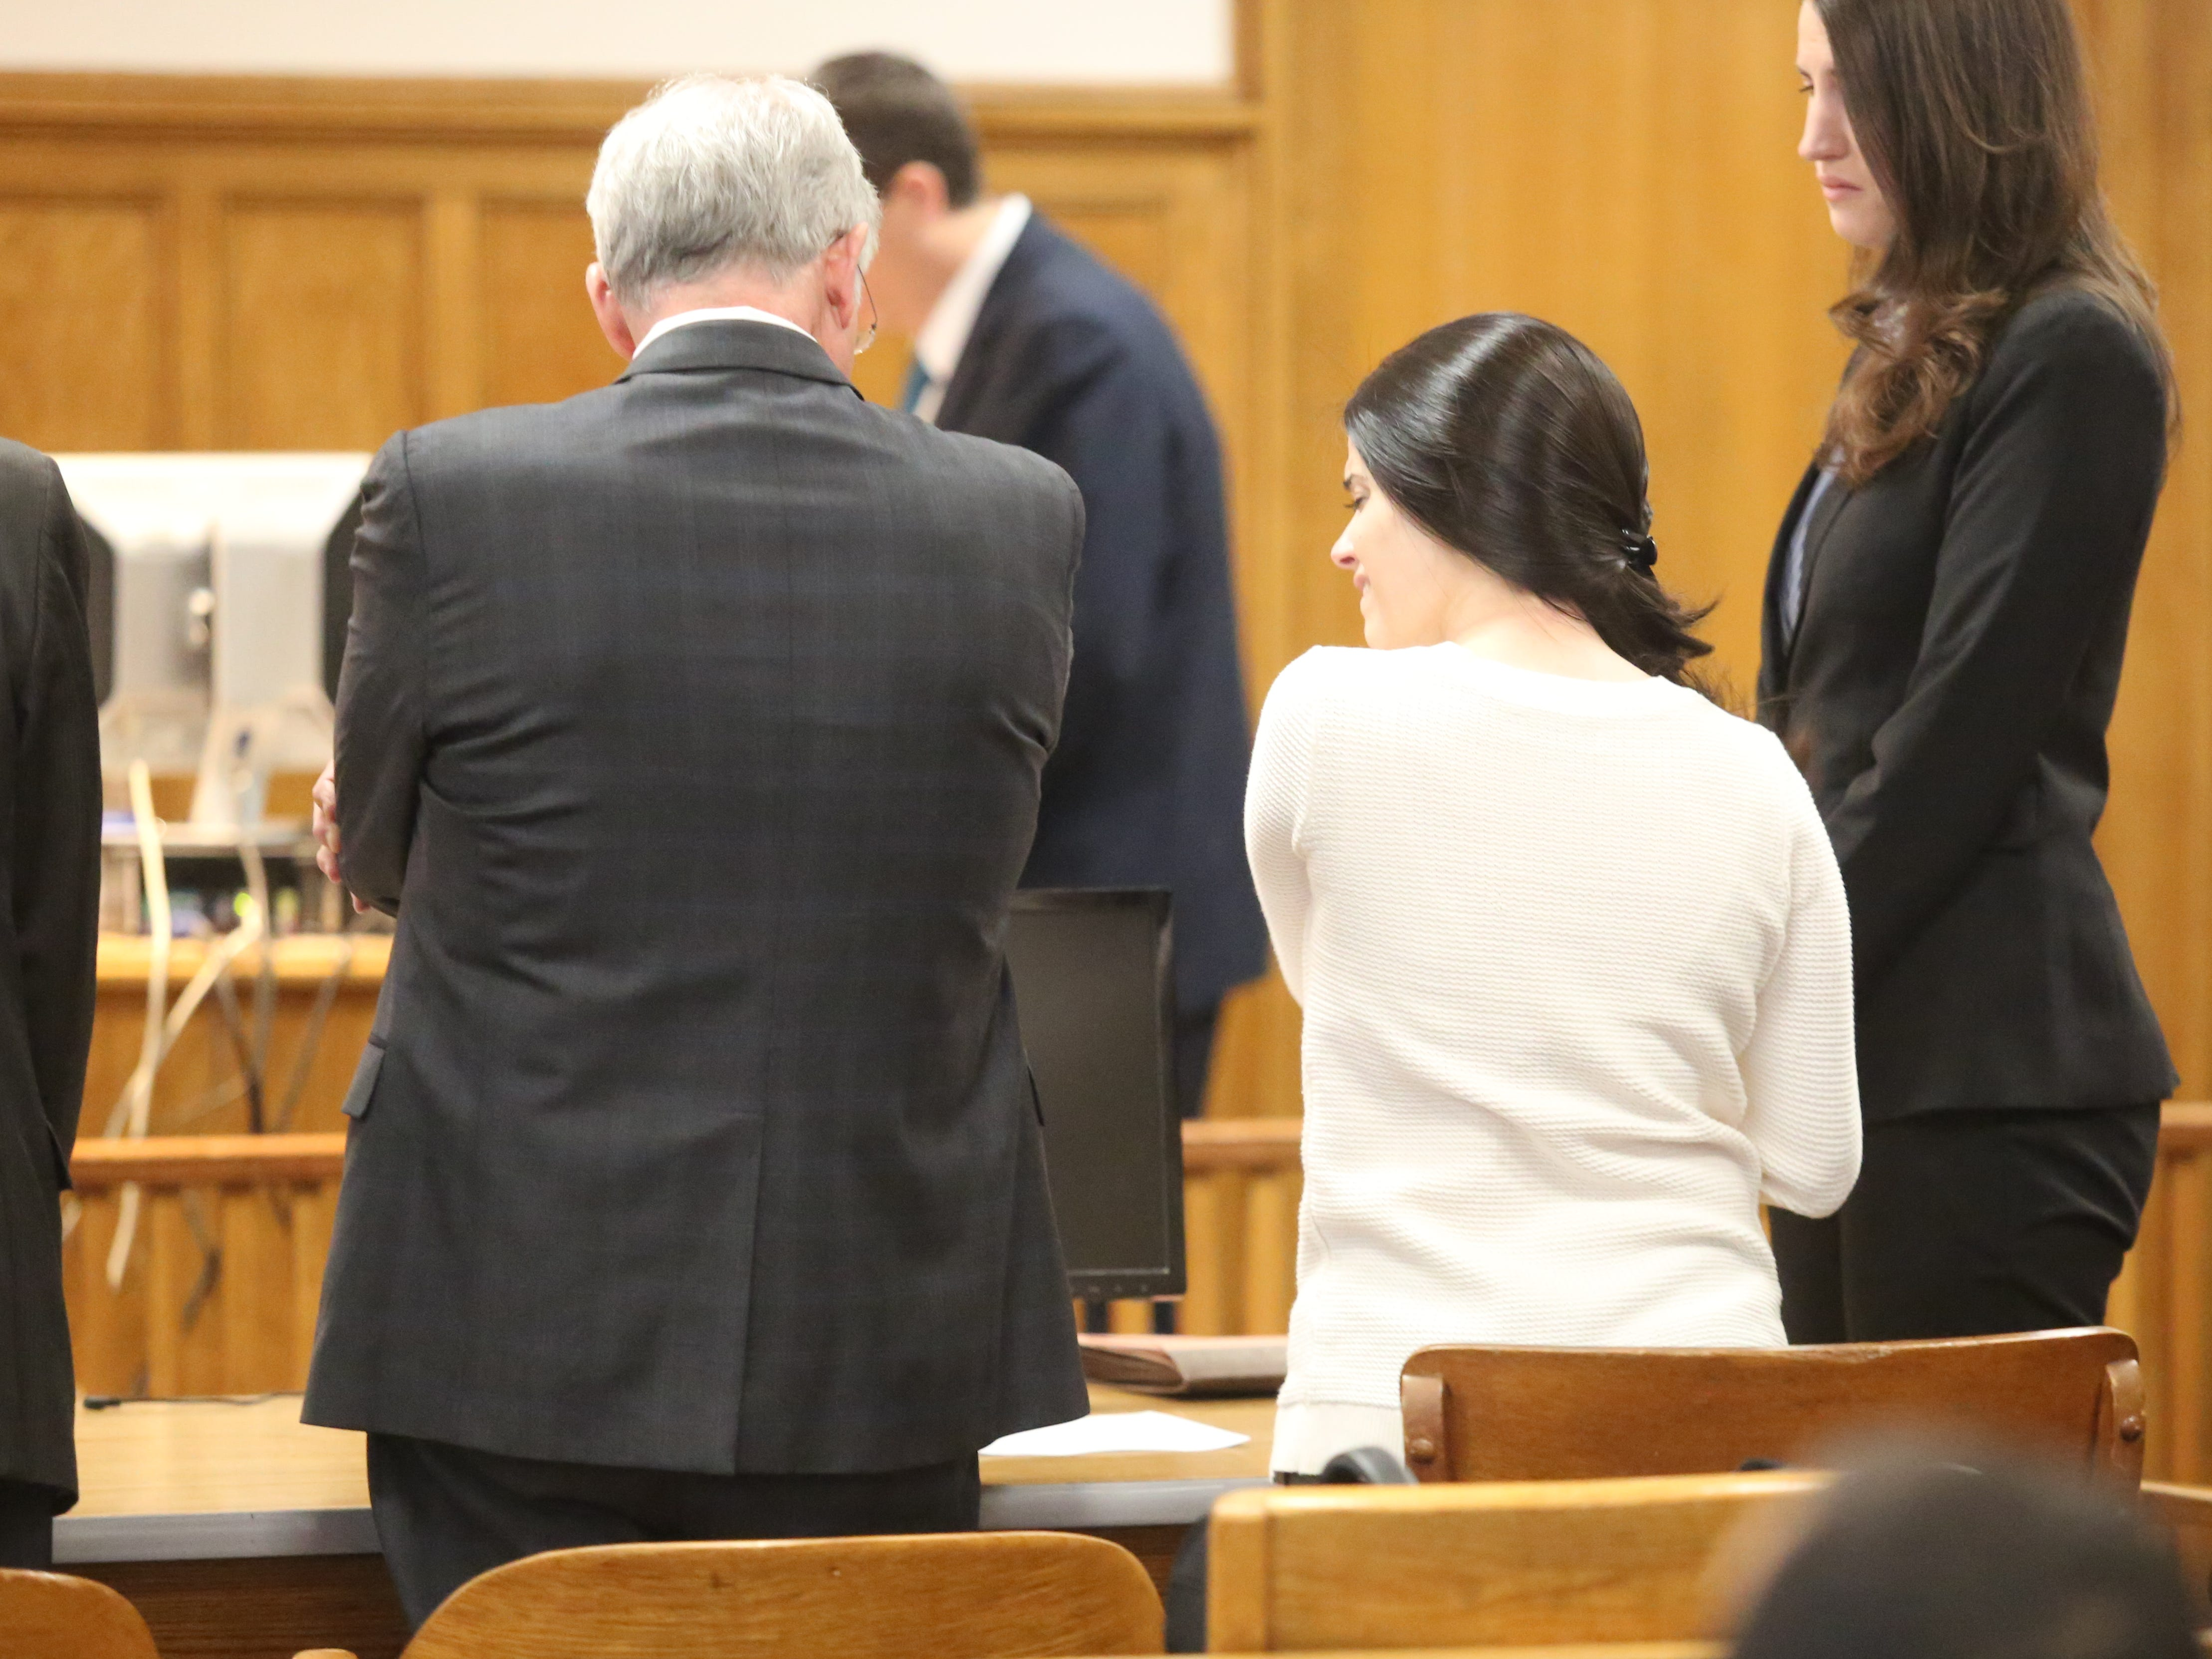 Nicole Addimando reacts after she was found guilty of second-degree murder in the shooting death of Christopher Grover on April 12, 2019.